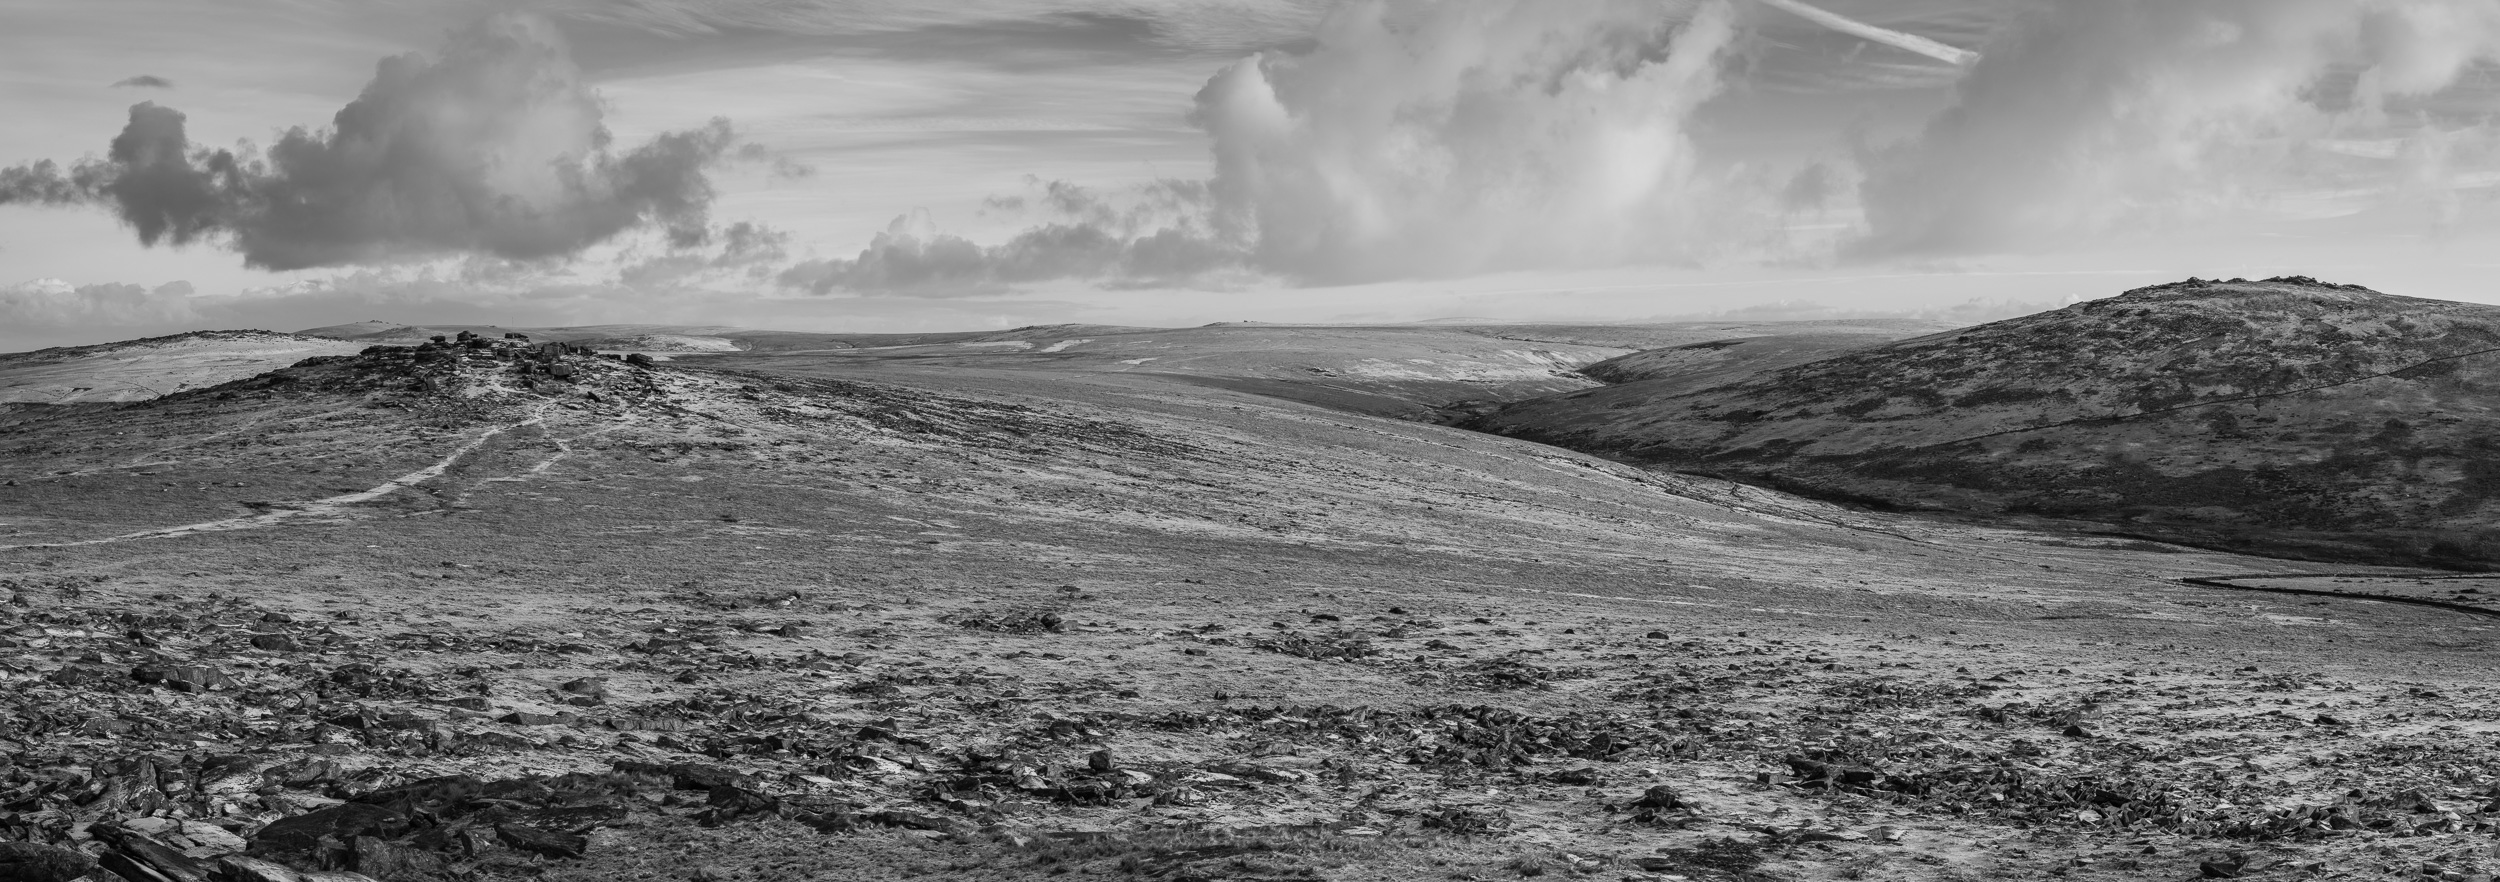 Roos Tor and Great Mis Tor Panorama from Great Mis Tor, Dartmoor, Devon  - Nikon D850, Nikkor 24-70 mm f/2.8 VR at 70 mm, f/11, 1/40th sec at ISO 64, 11 stitch panorama.